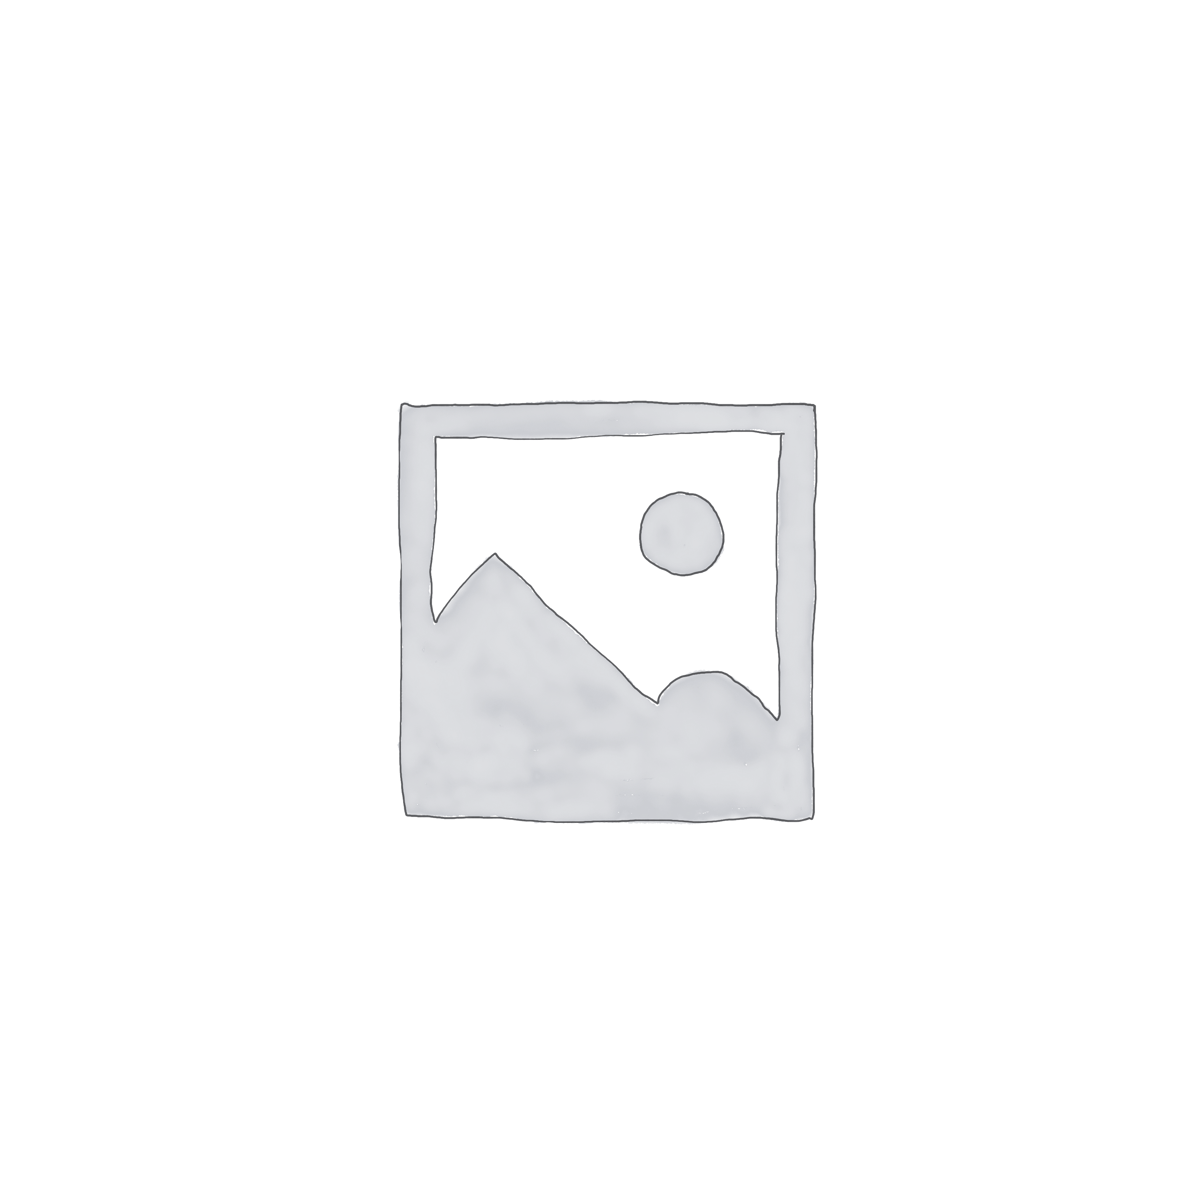 Chassis Electrical System